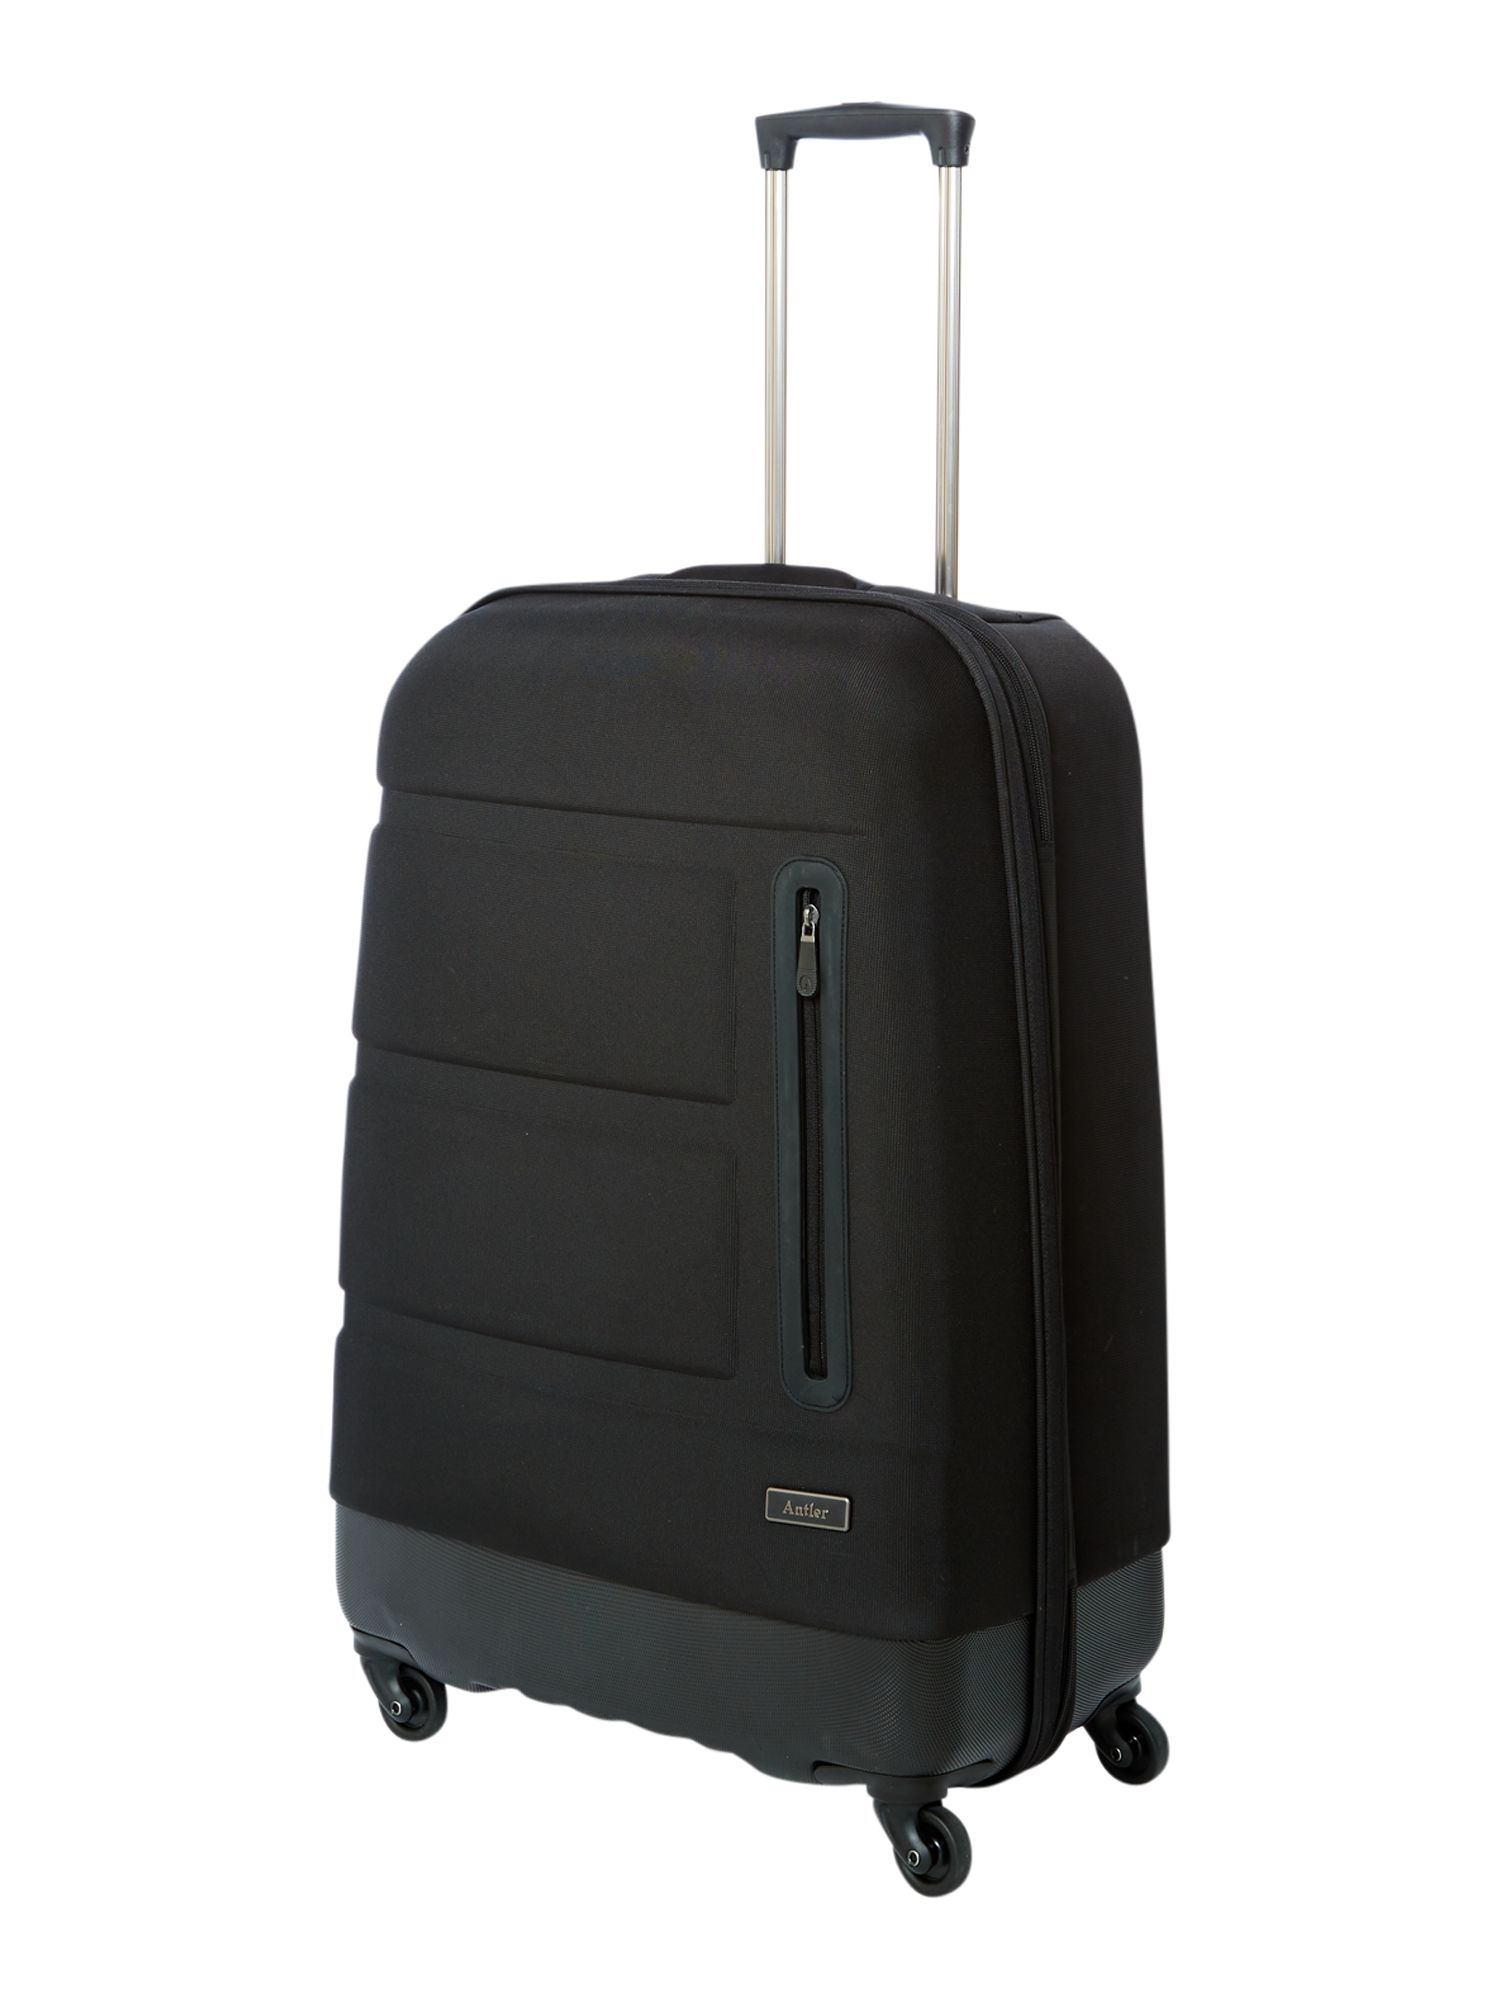 Hydra large black suitcase